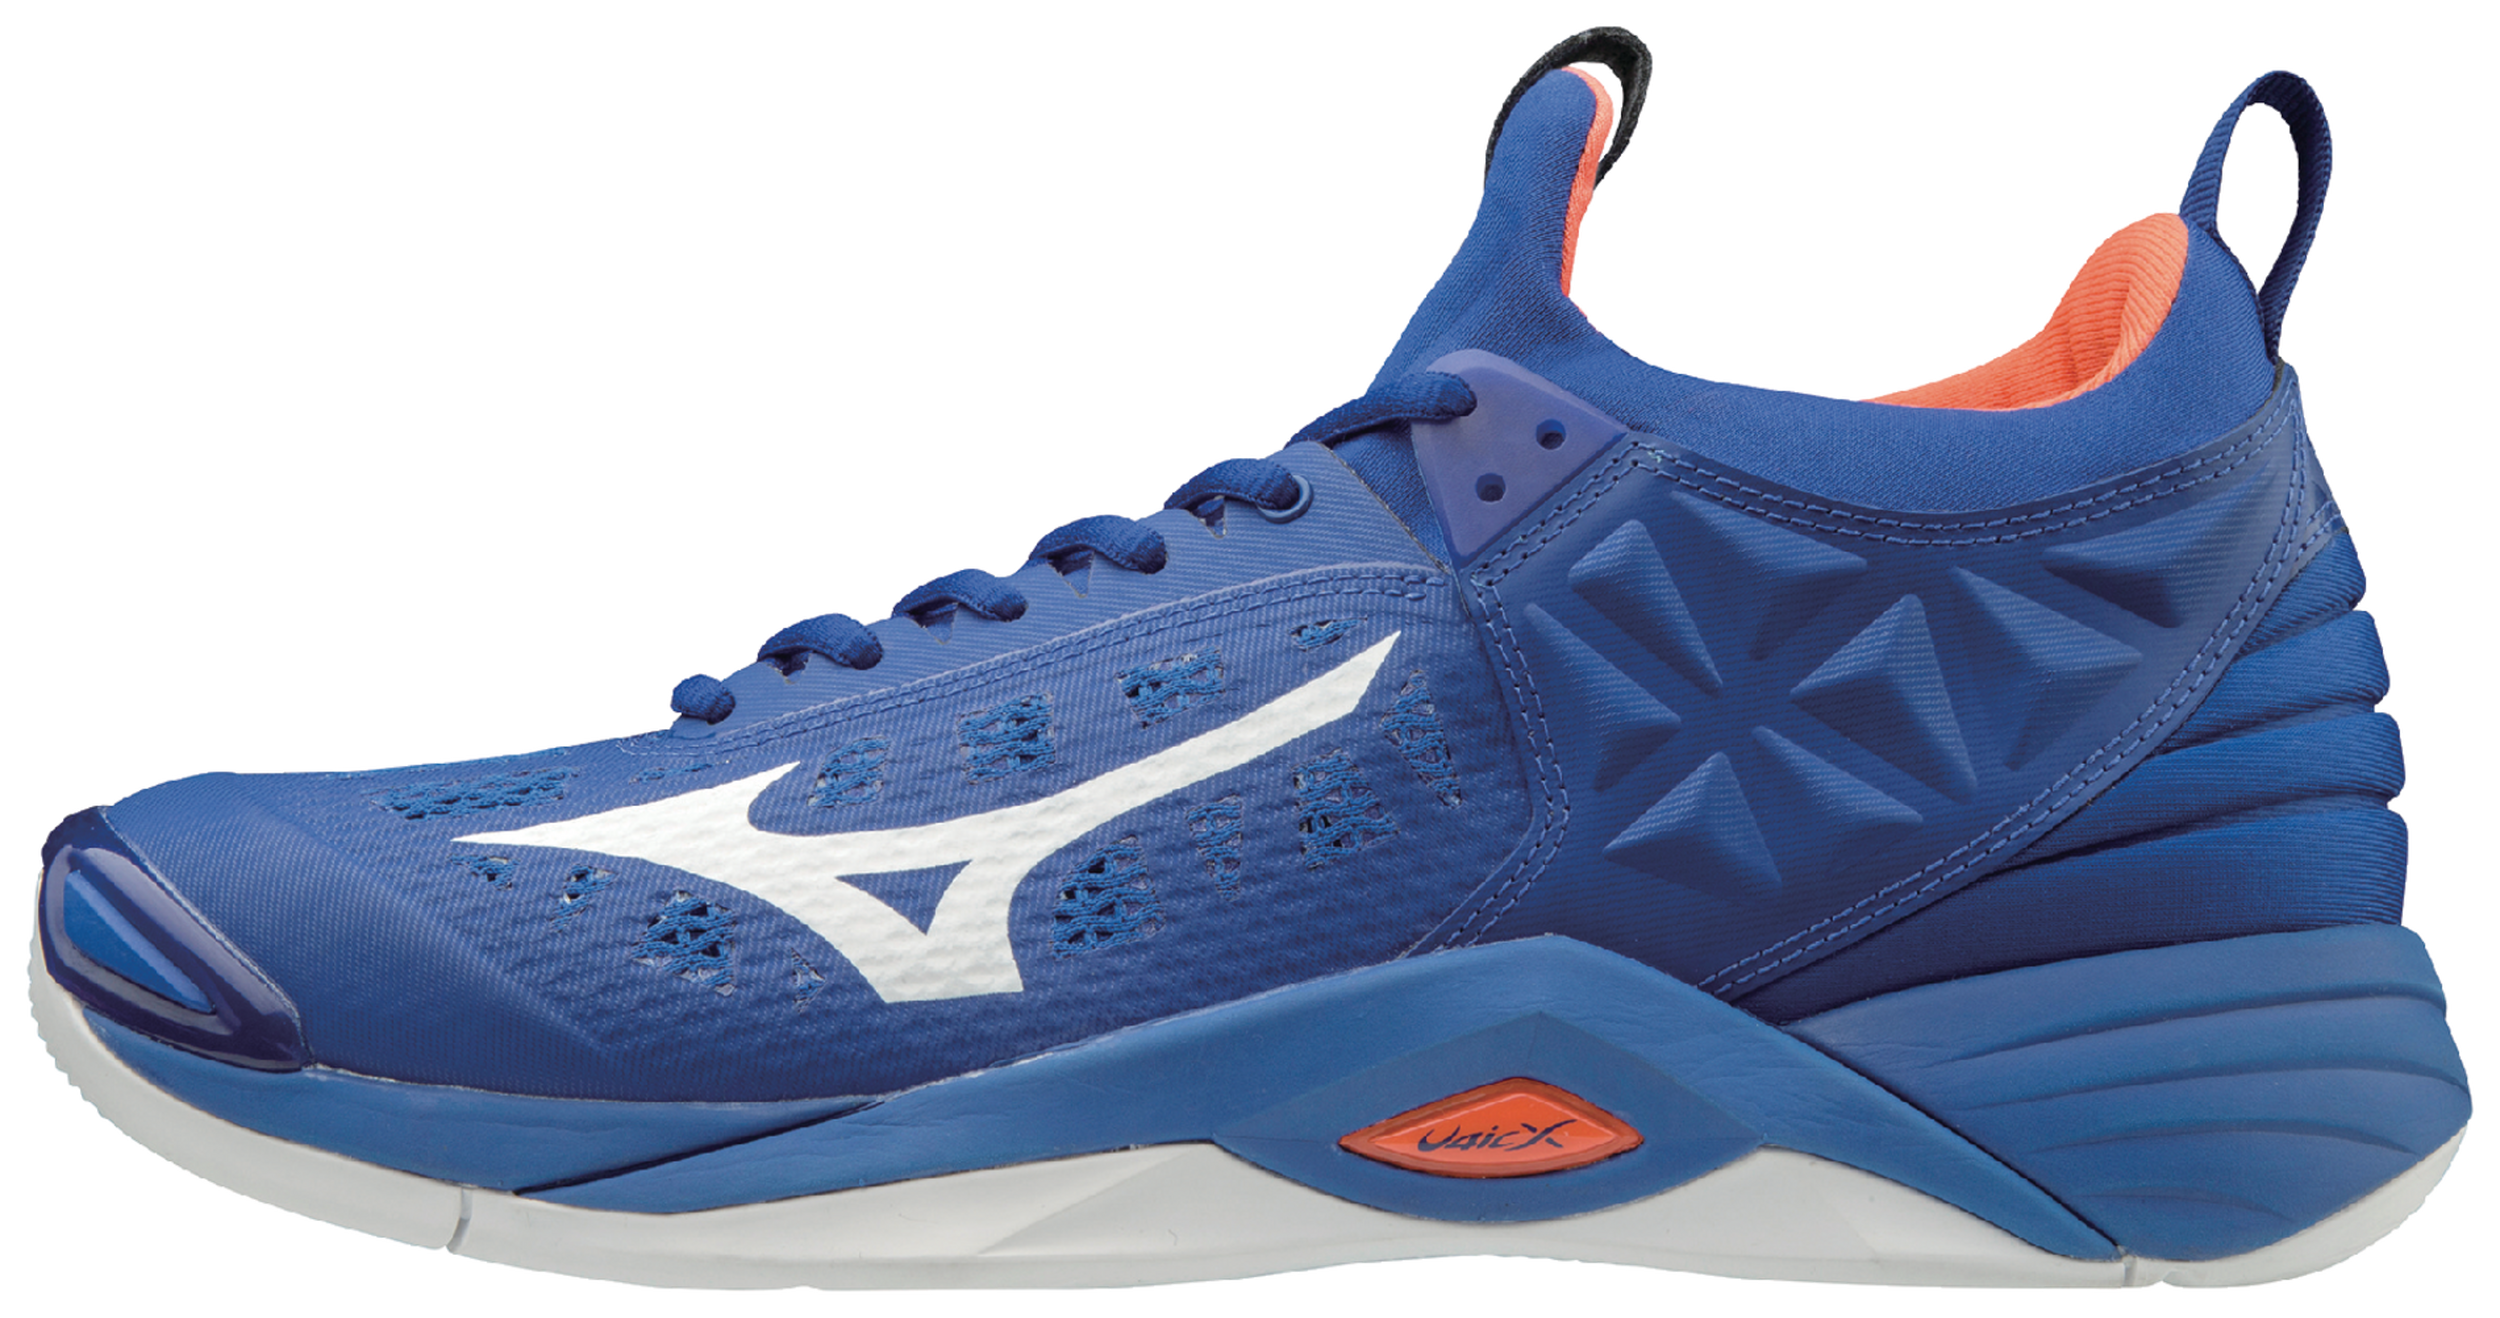 mizuno limited edition volleyball shoes 9.5